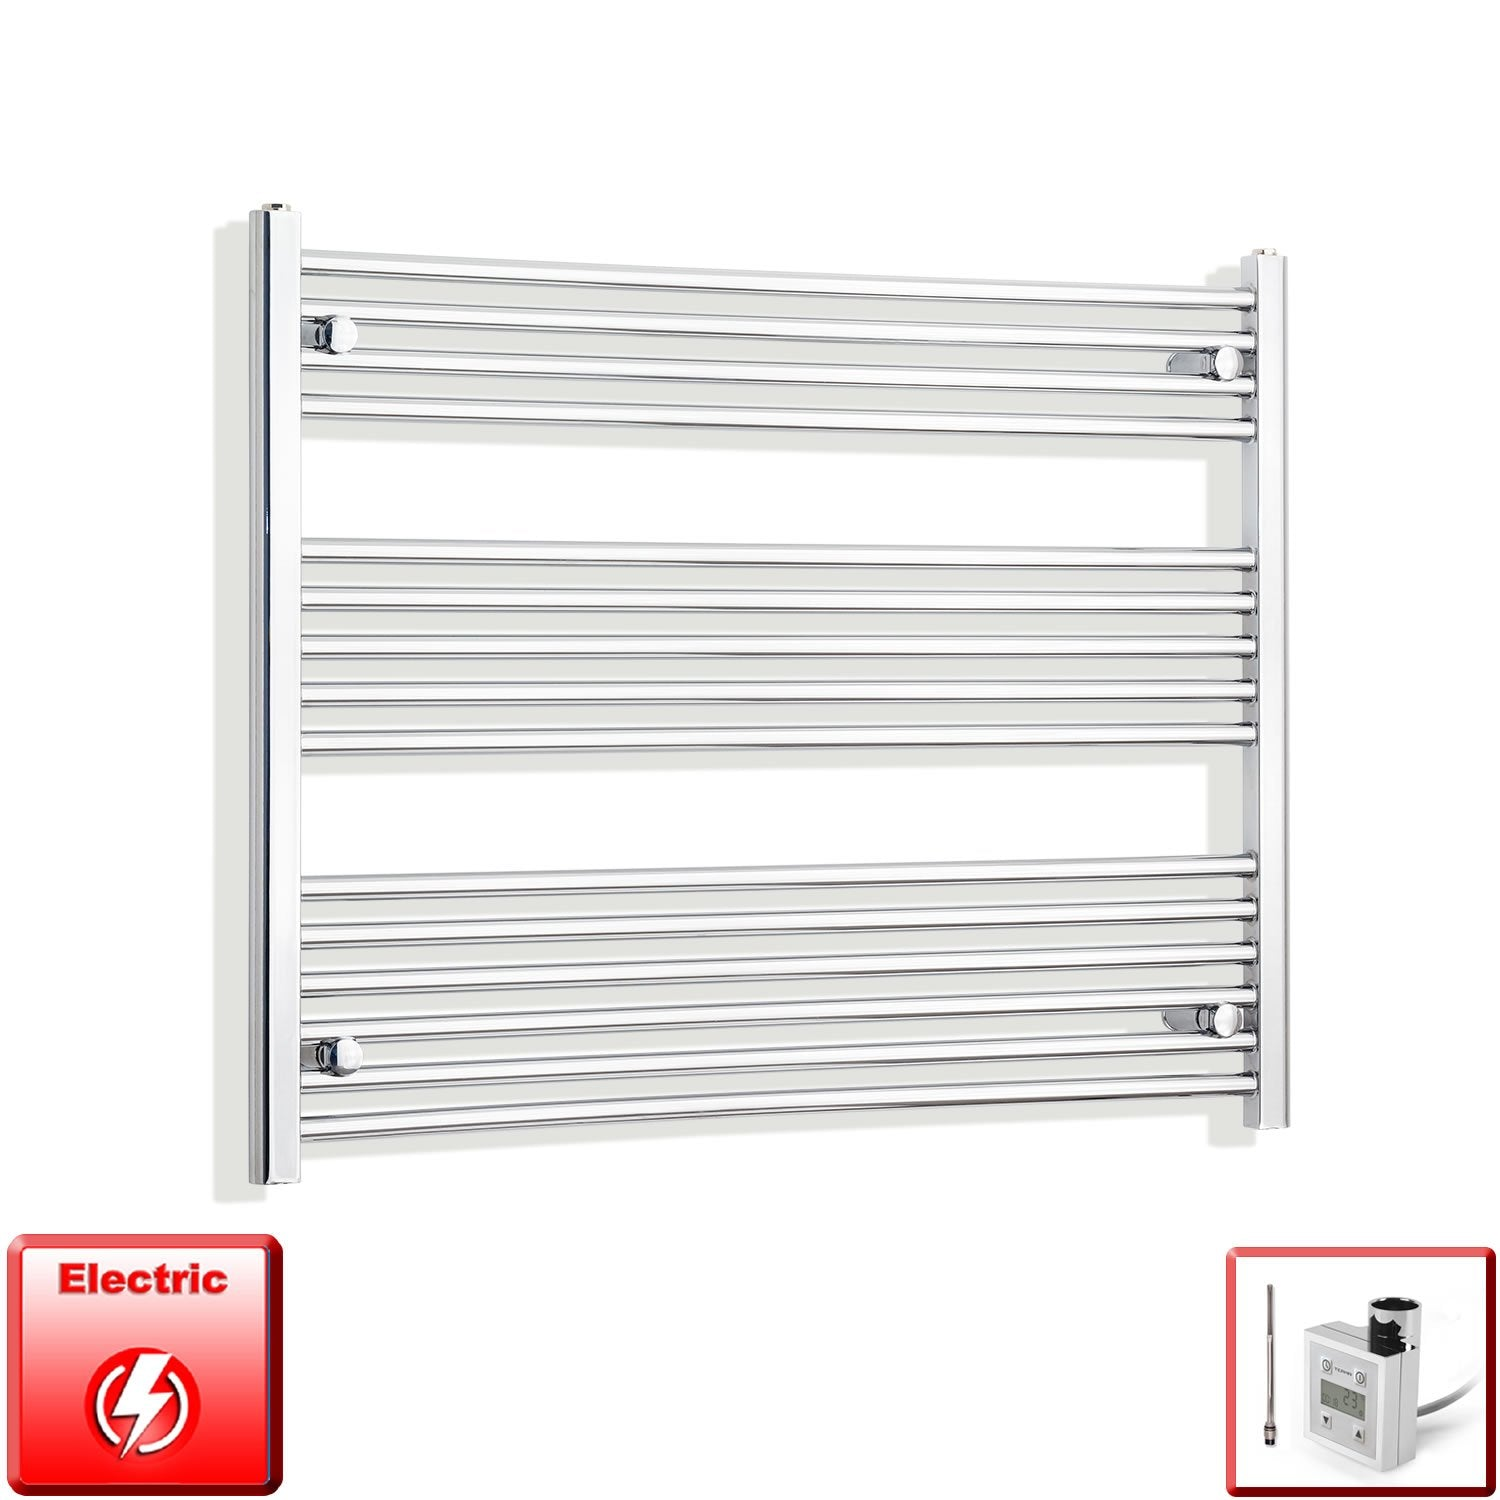 1000mm Wide 800mm High Flat Chrome Pre-Filled Electric Heated Towel Rail Radiator HTR,KTX-3 Thermostatic Element